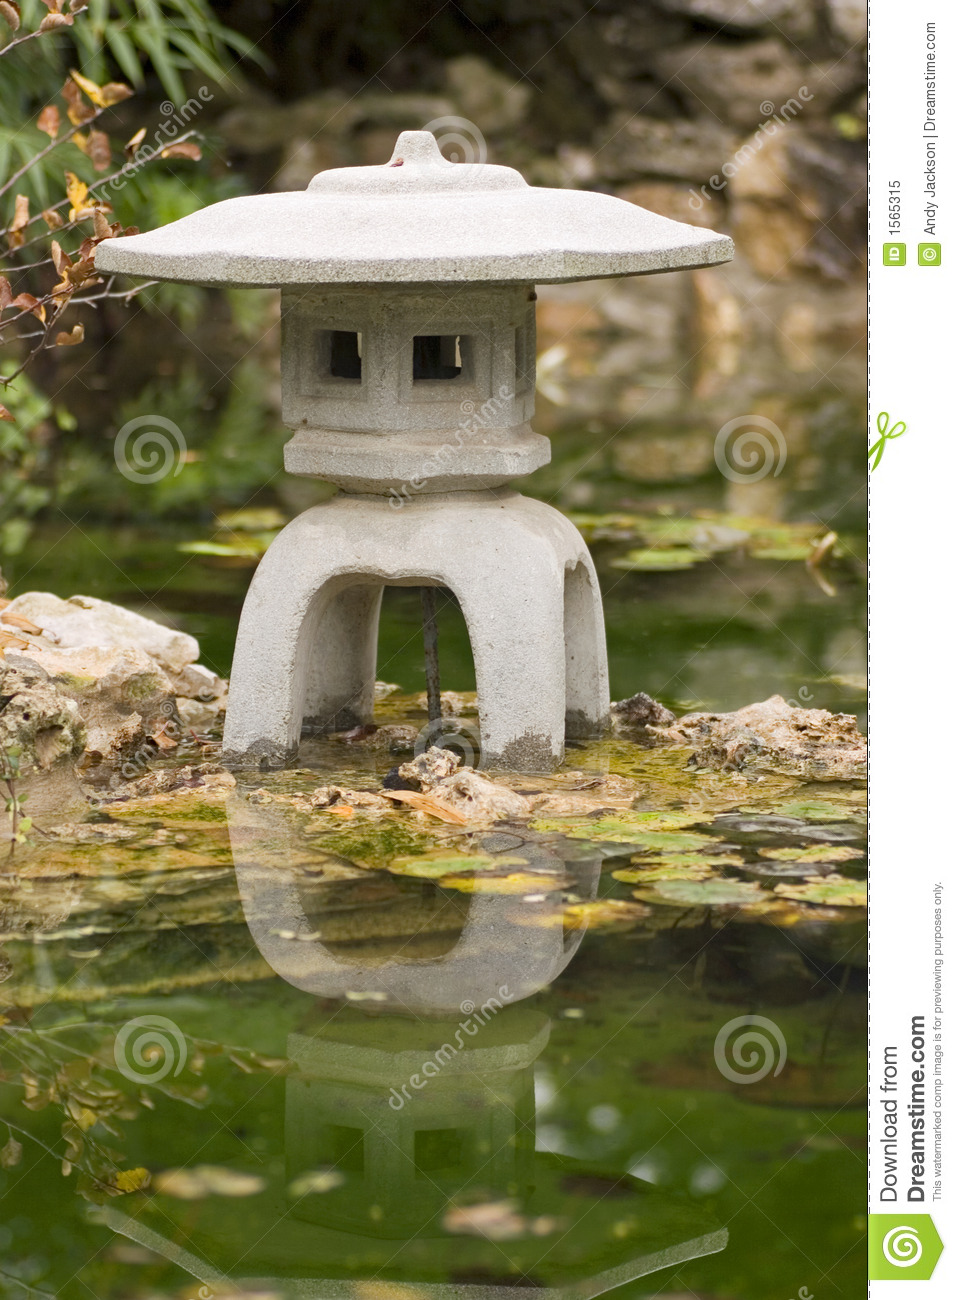 Japanese water feature stock image image of lantern for Japanese water feature